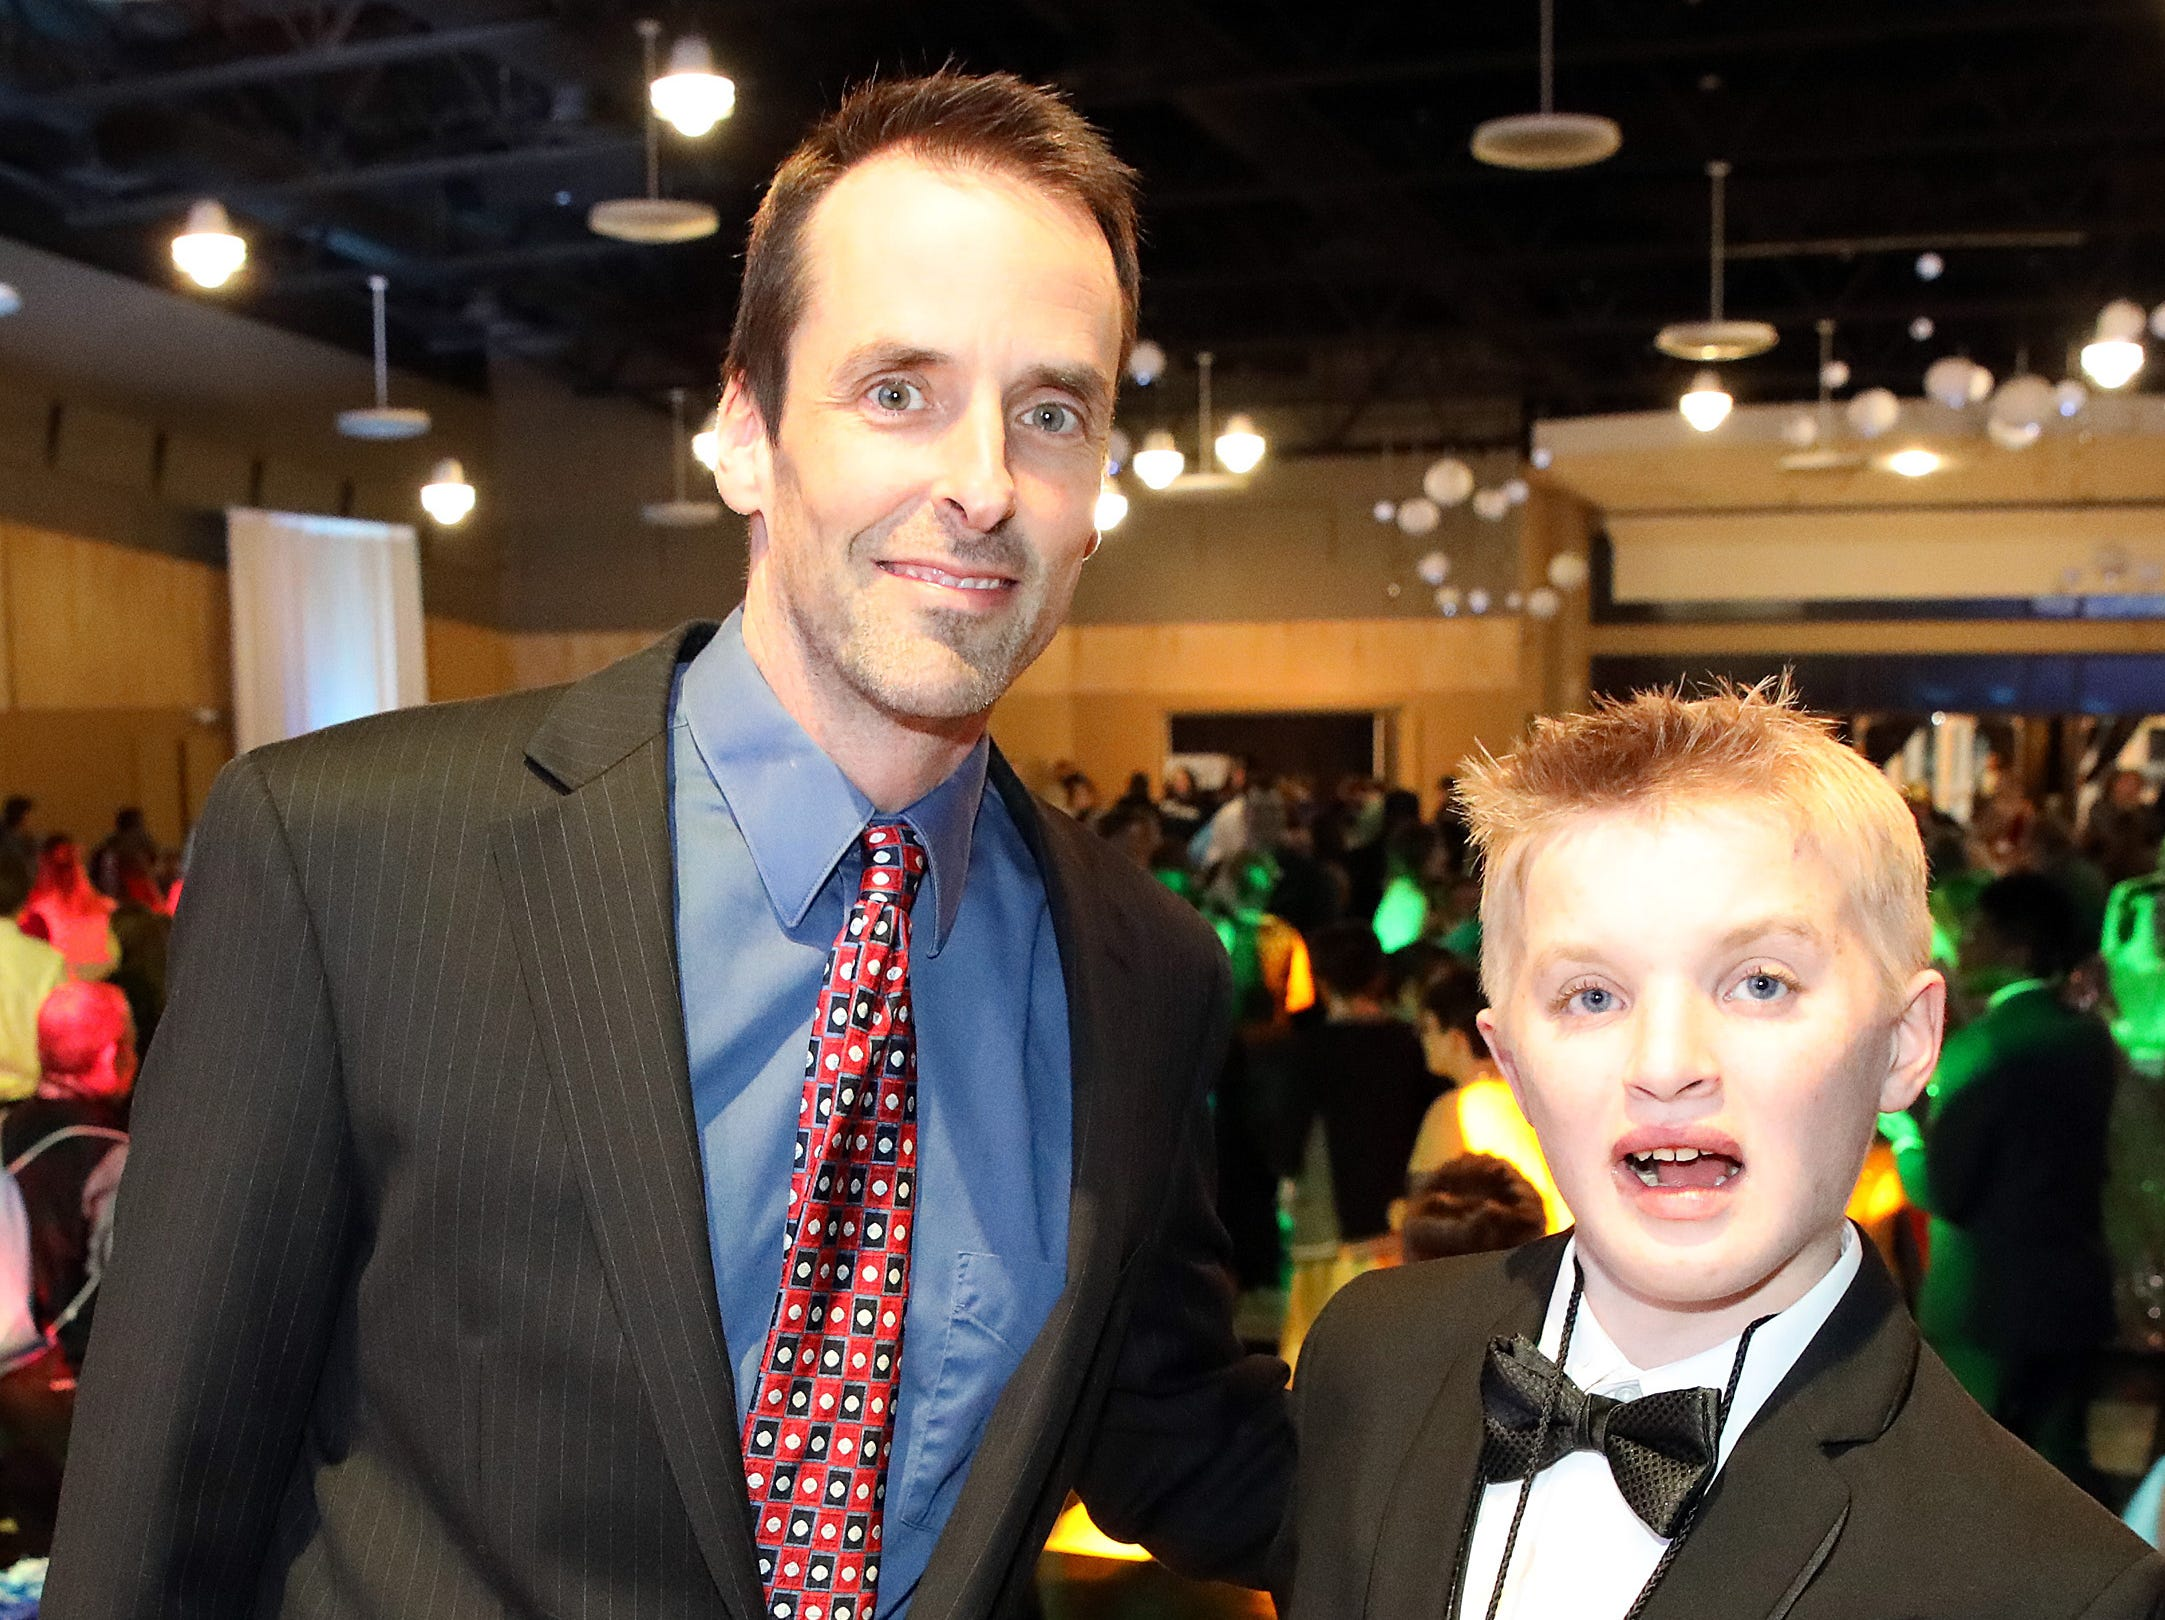 The Rev. Mike Van Rees and Aspen Essink stop for a photo during the Night to Shine event at Prairie Ridge Church in Ankeny on Friday, Feb. 8, 2019. Sponsored by the Tim Tebow Foundation, the event for adults with special needs features a prom-like atmosphere with dancing, limo rides, food and more.